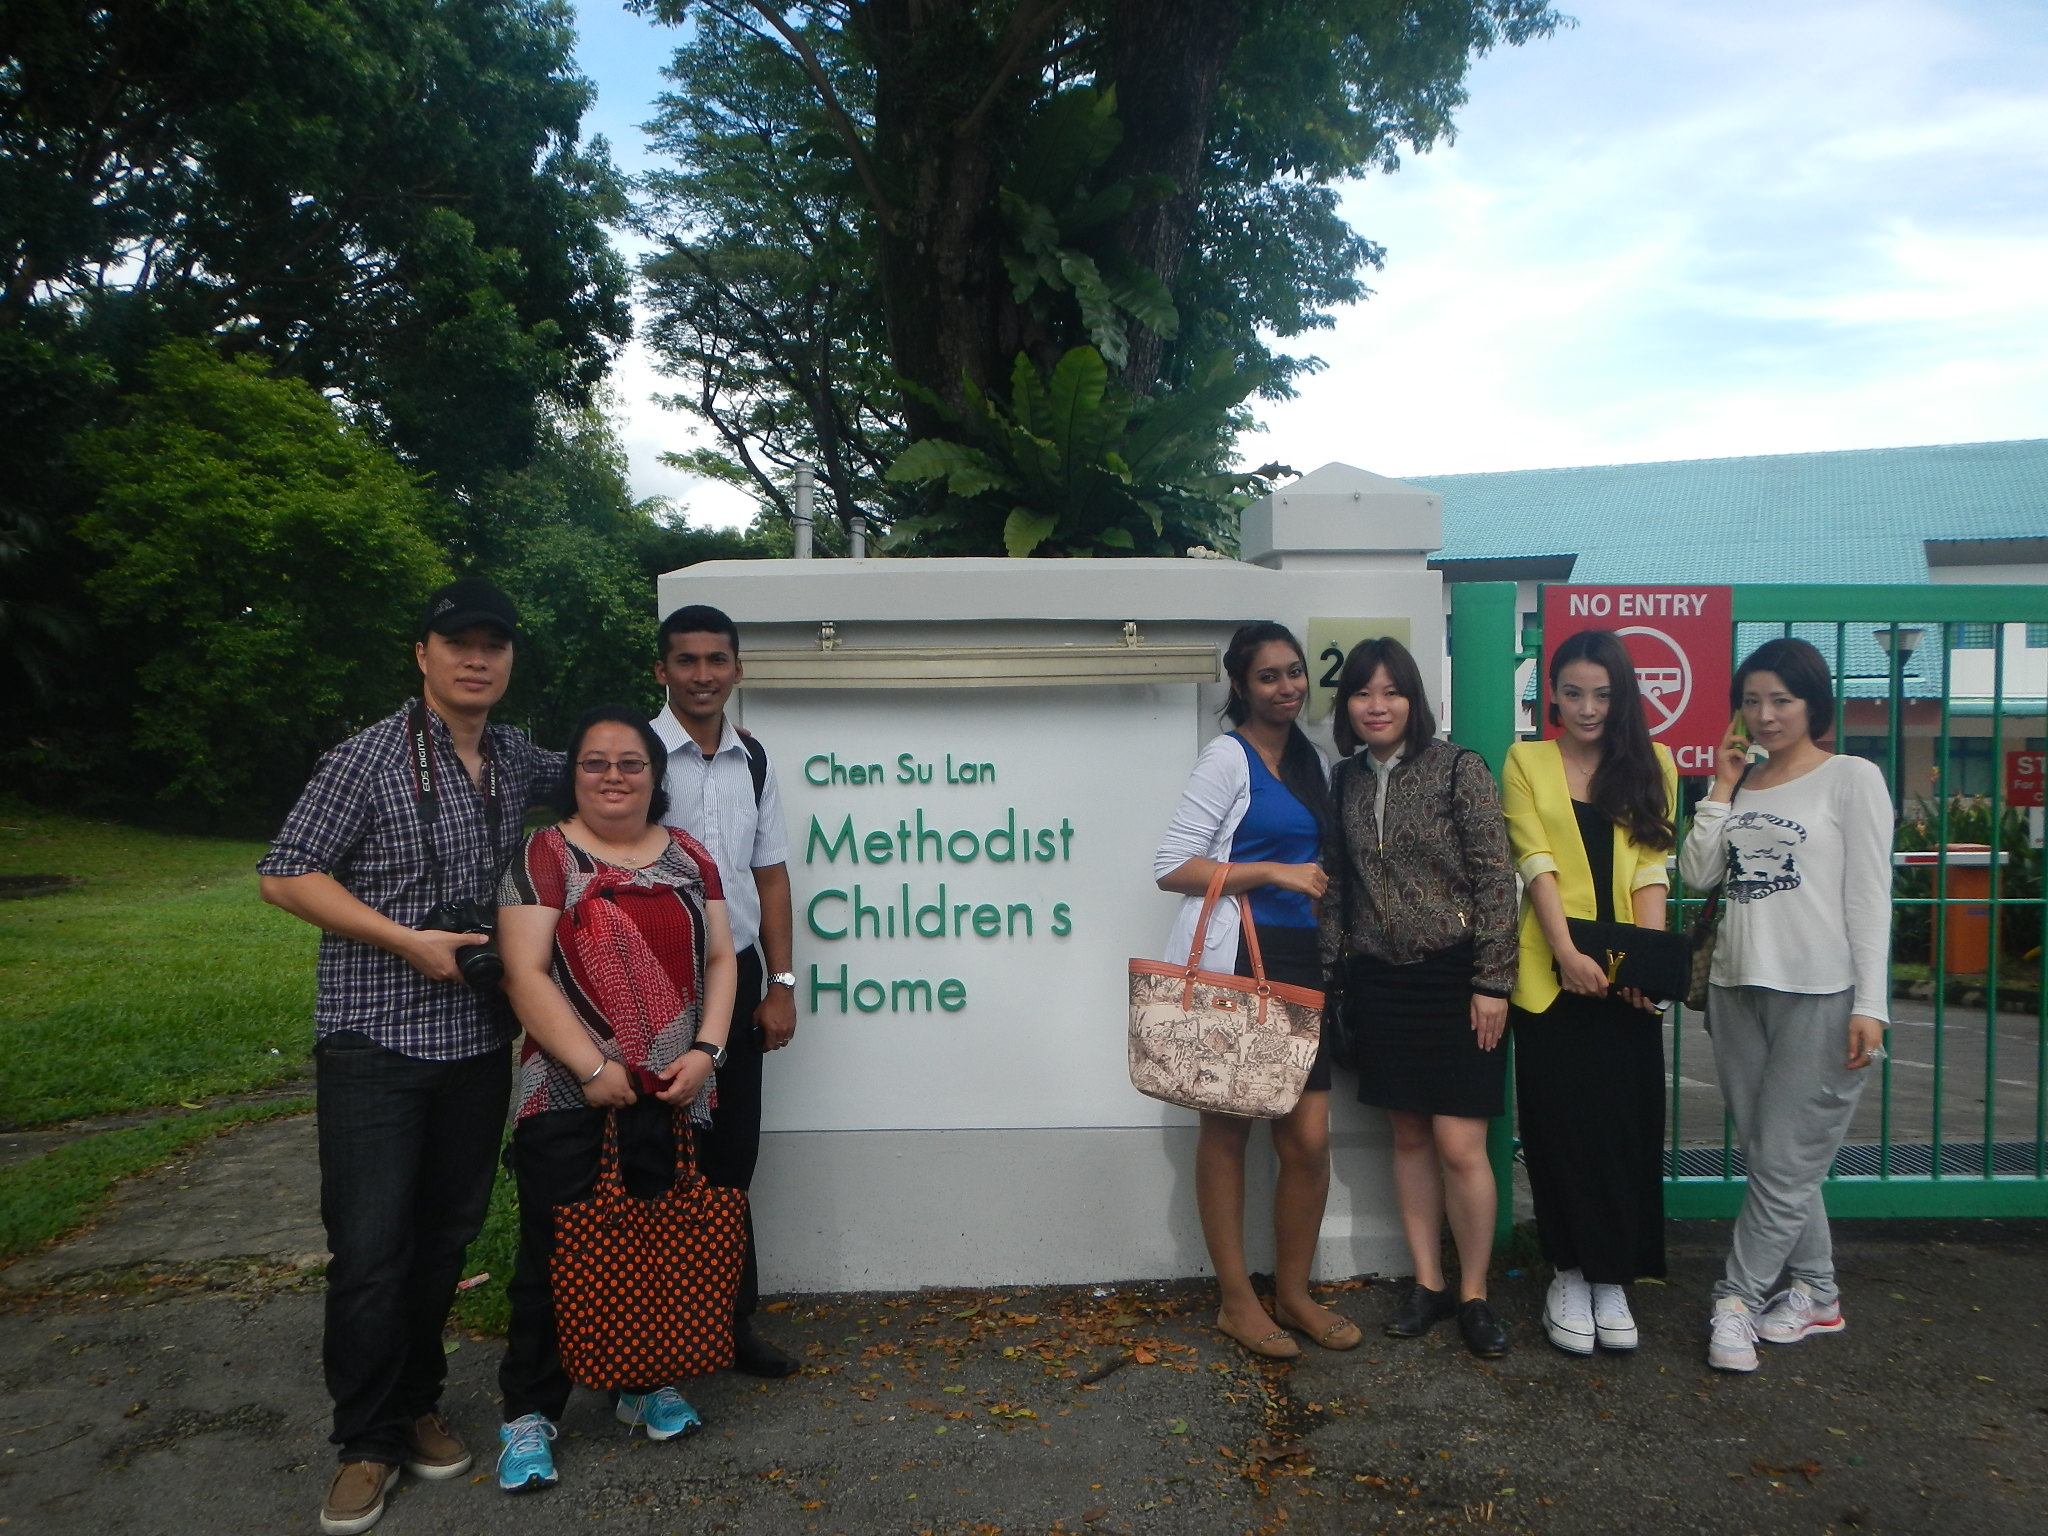 Charity Work at Methodist Children's Home